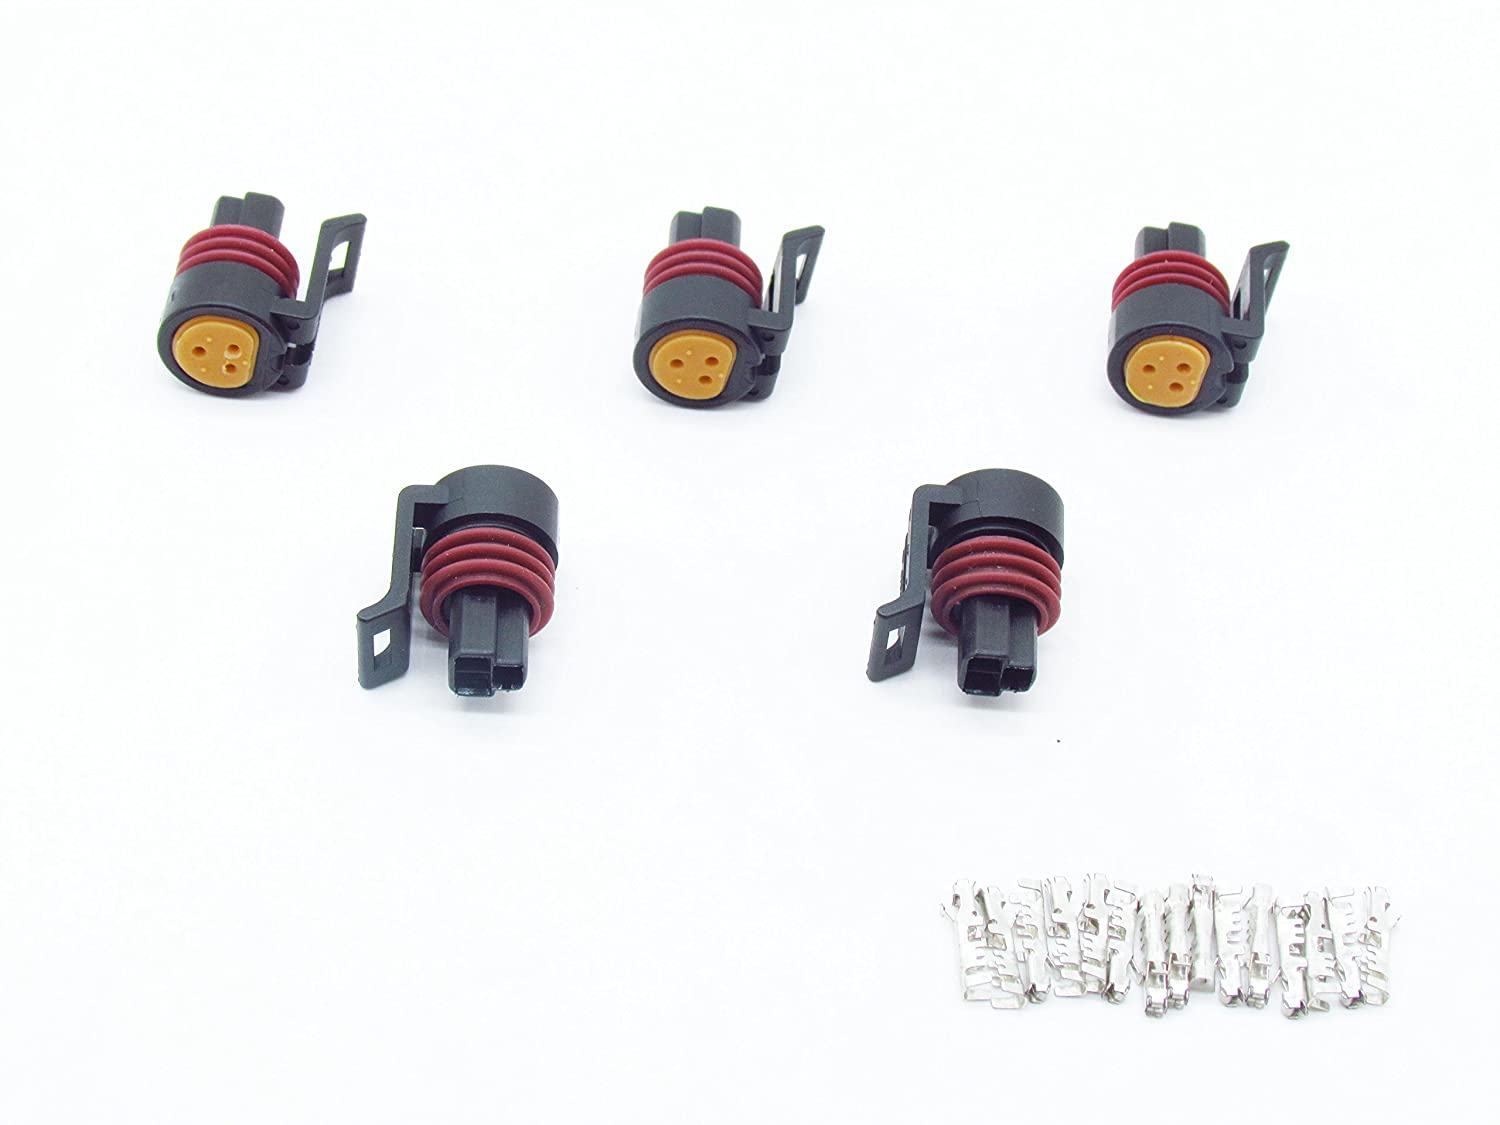 CNKF 5 Sets Metri-Pack 150 Series 3 Position Female Connector with terminals 12078090 kaifa elec